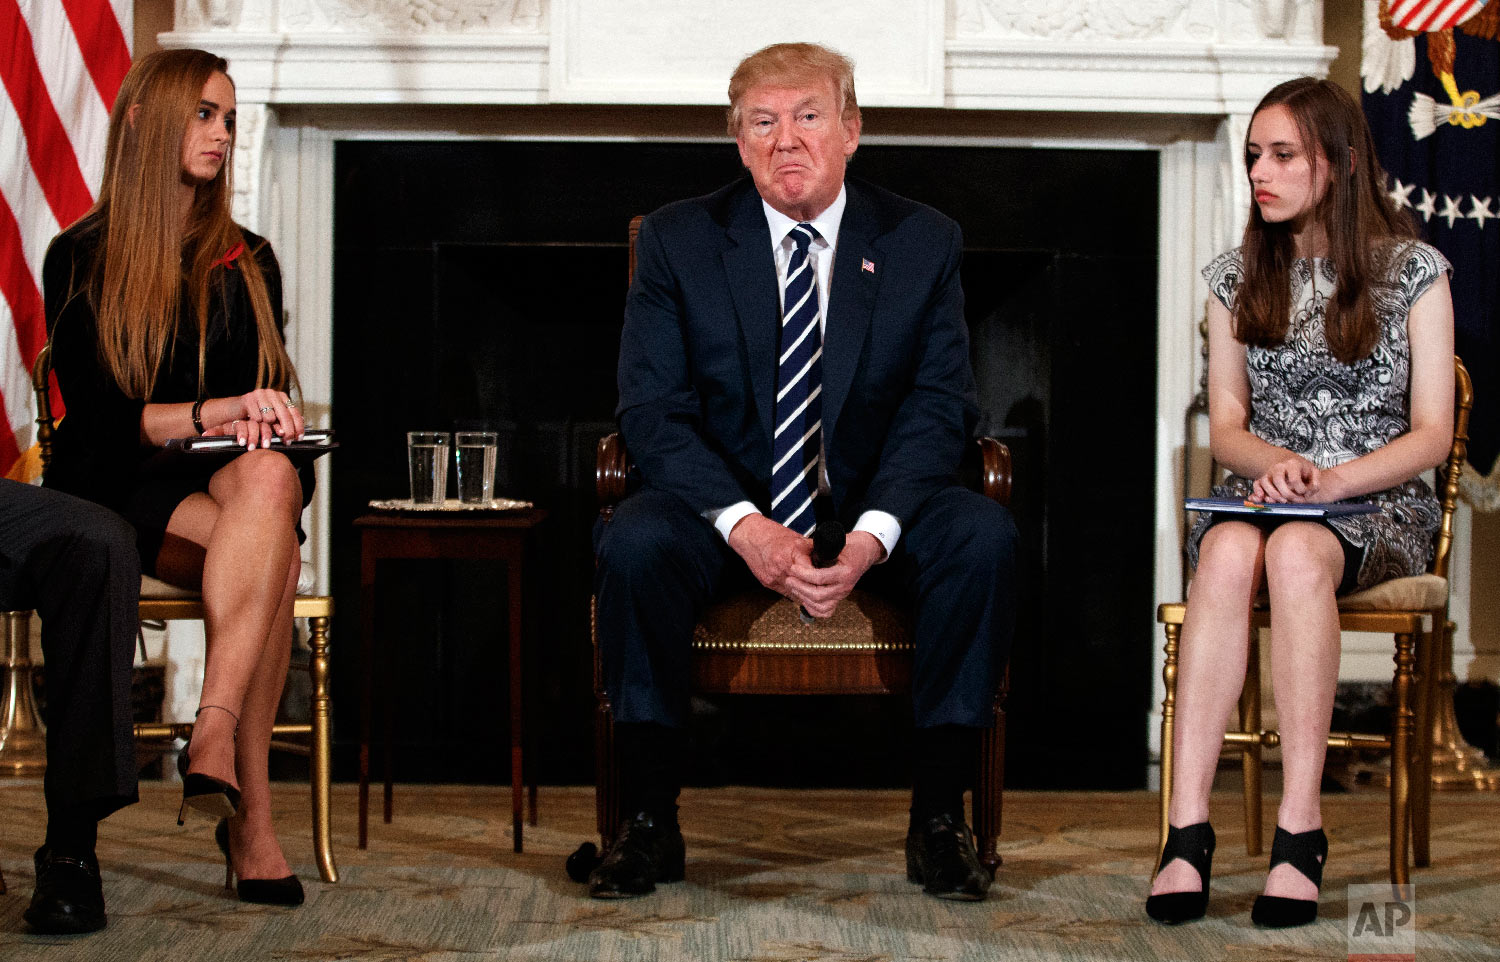 President Donald Trump, joined by Marjory Stoneman Douglas High School student Carson Abt, right, and Julia Cordover, the school's student body president, pauses during a listening session with high school students, teachers and others at the White House in Washington on Feb. 21, 2018, a week after a gunman massacred 17 people at the Florida high school. (AP Photo/Carolyn Kaster)